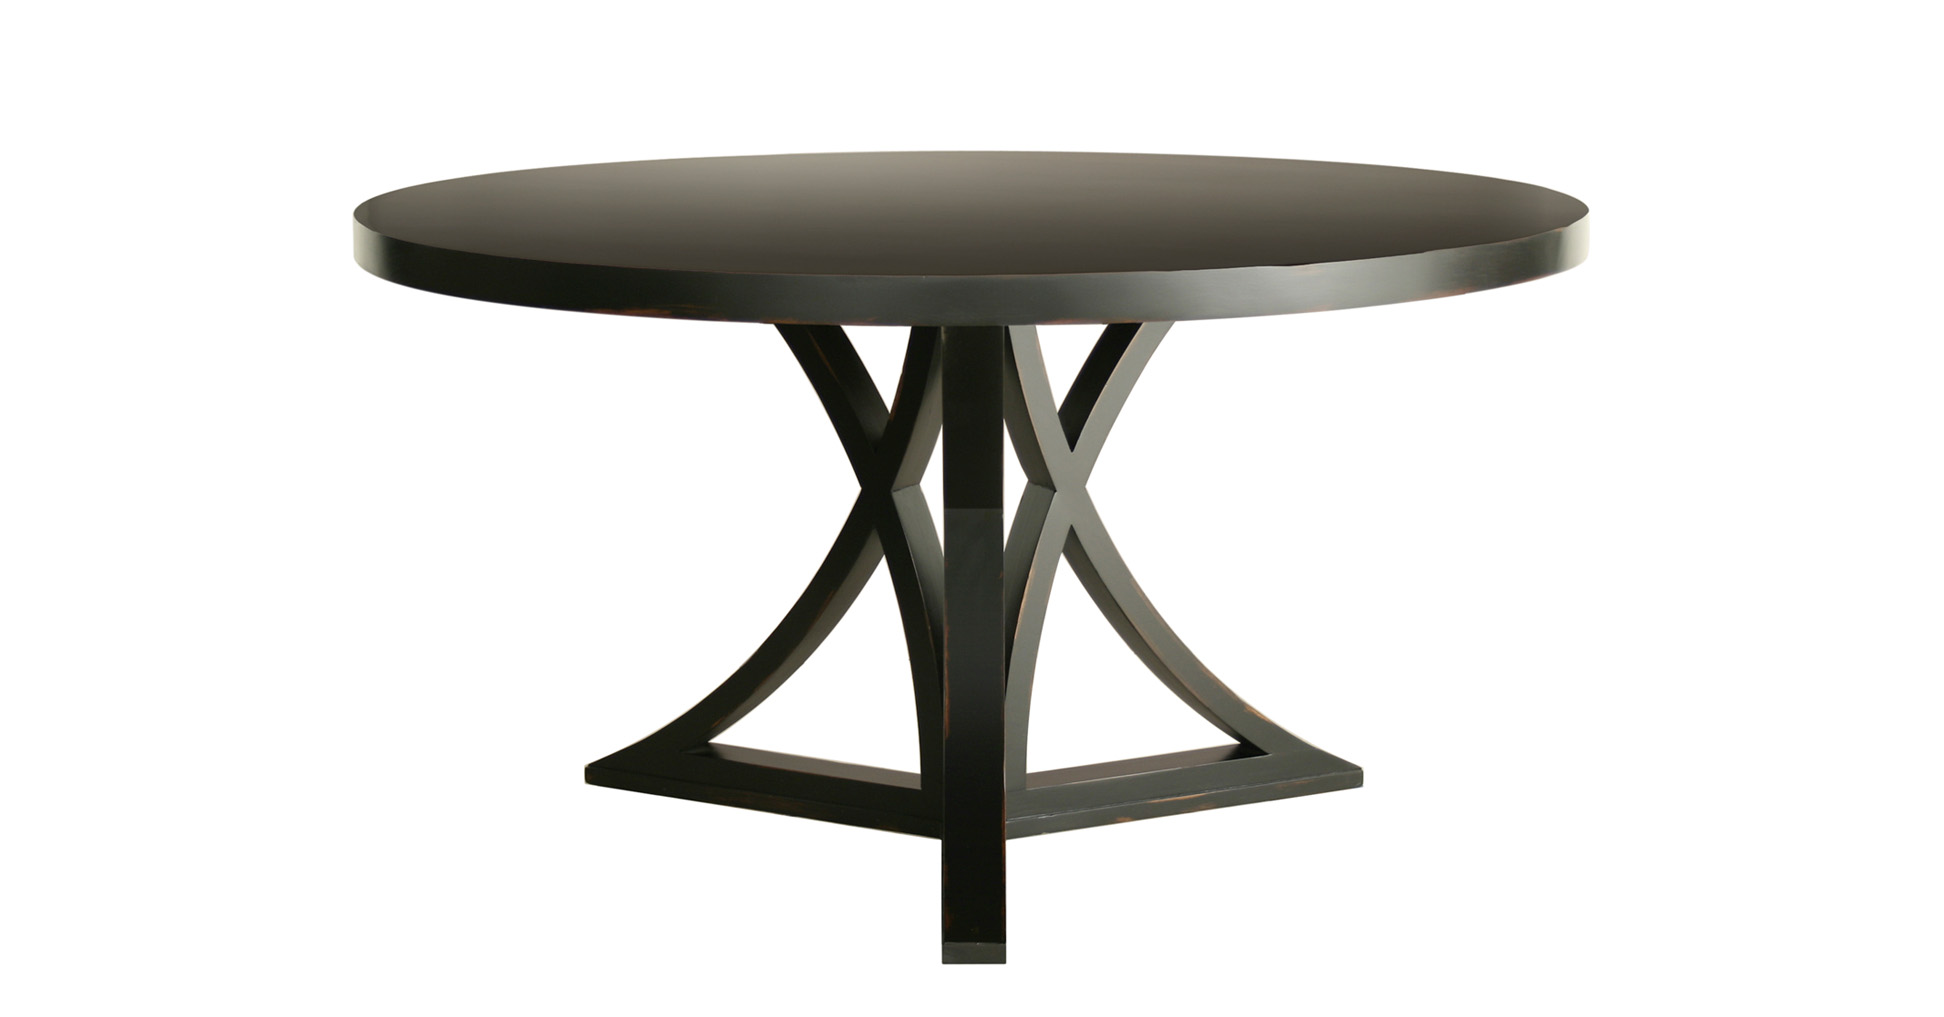 Black round kitchen table and chairs photo - 2